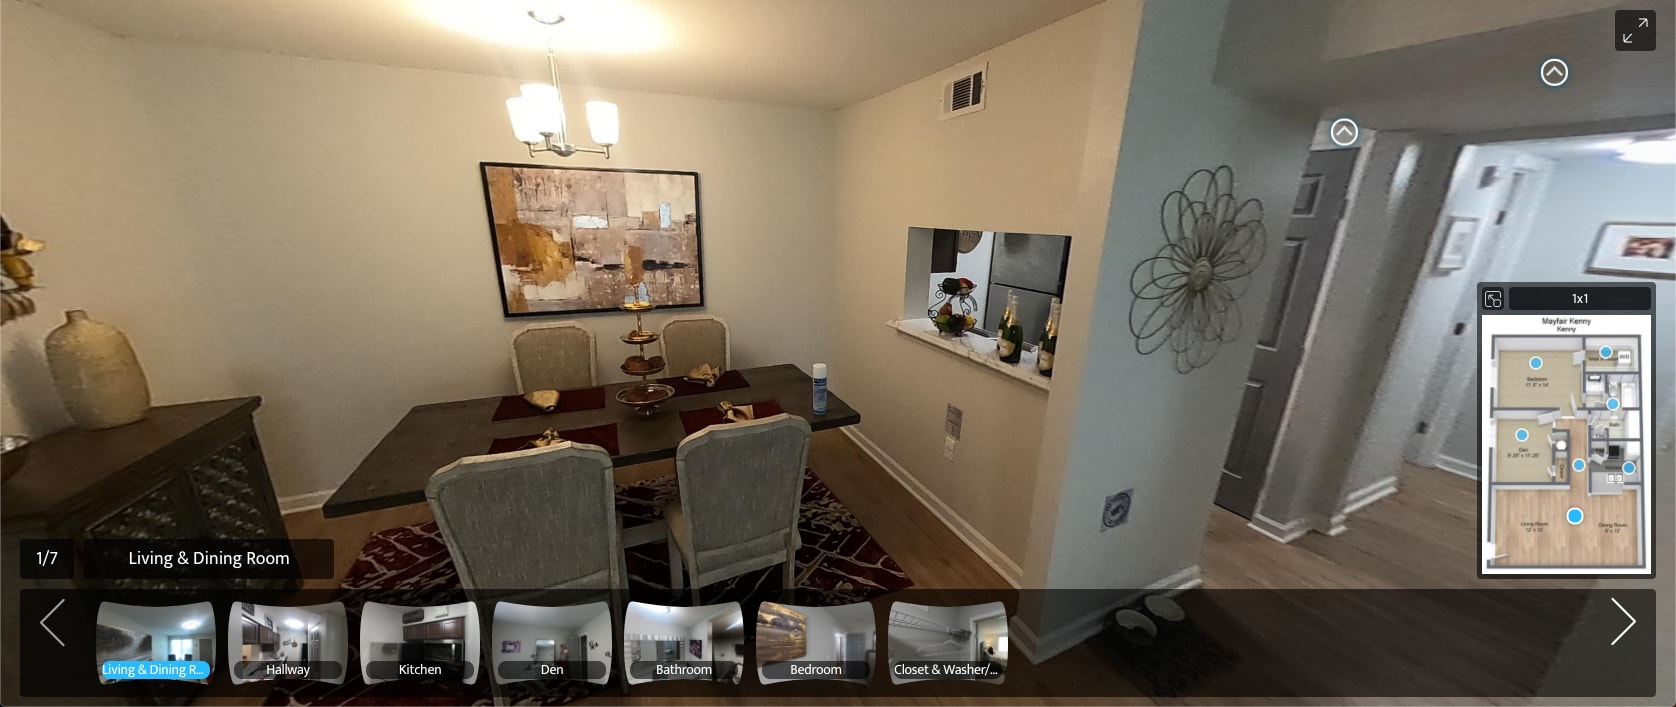 virtual tour of 1 Bedroom 1 Bath apartment at The Mayfair Apartment Homes in New Orleans, Louisiana